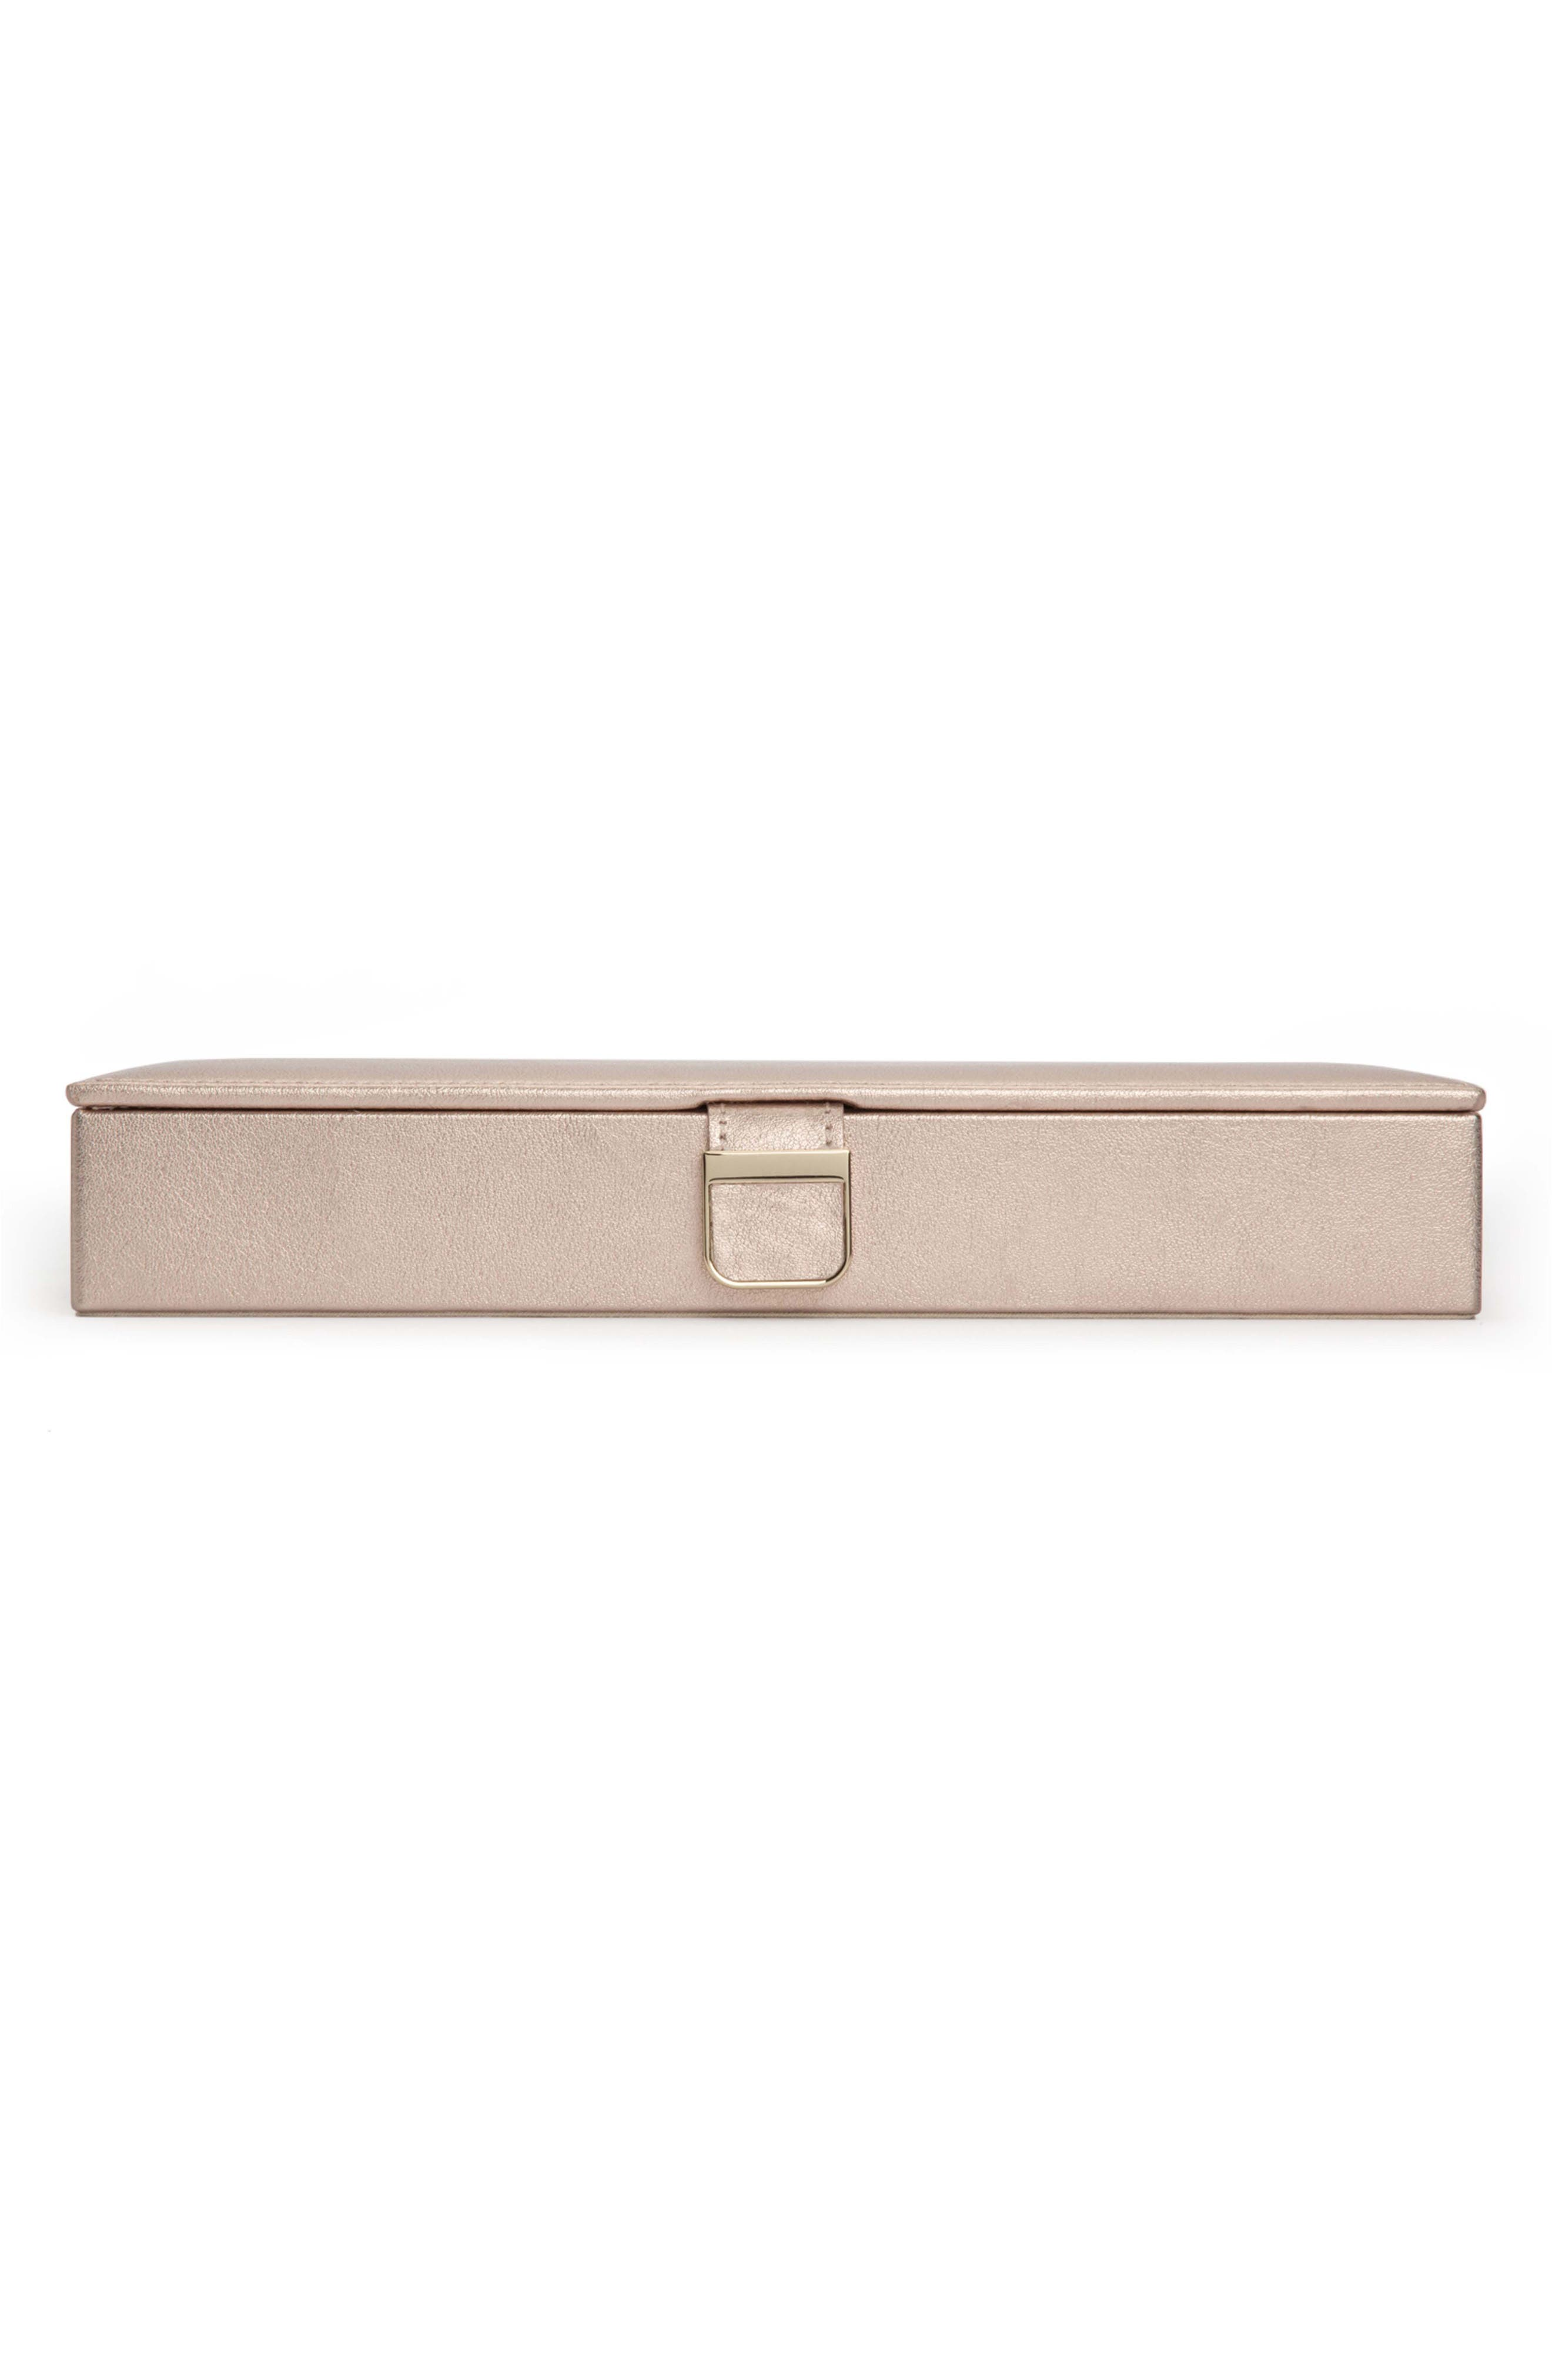 Palermo Safe Deposit Jewelry Box,                             Main thumbnail 1, color,                             ROSE GOLD